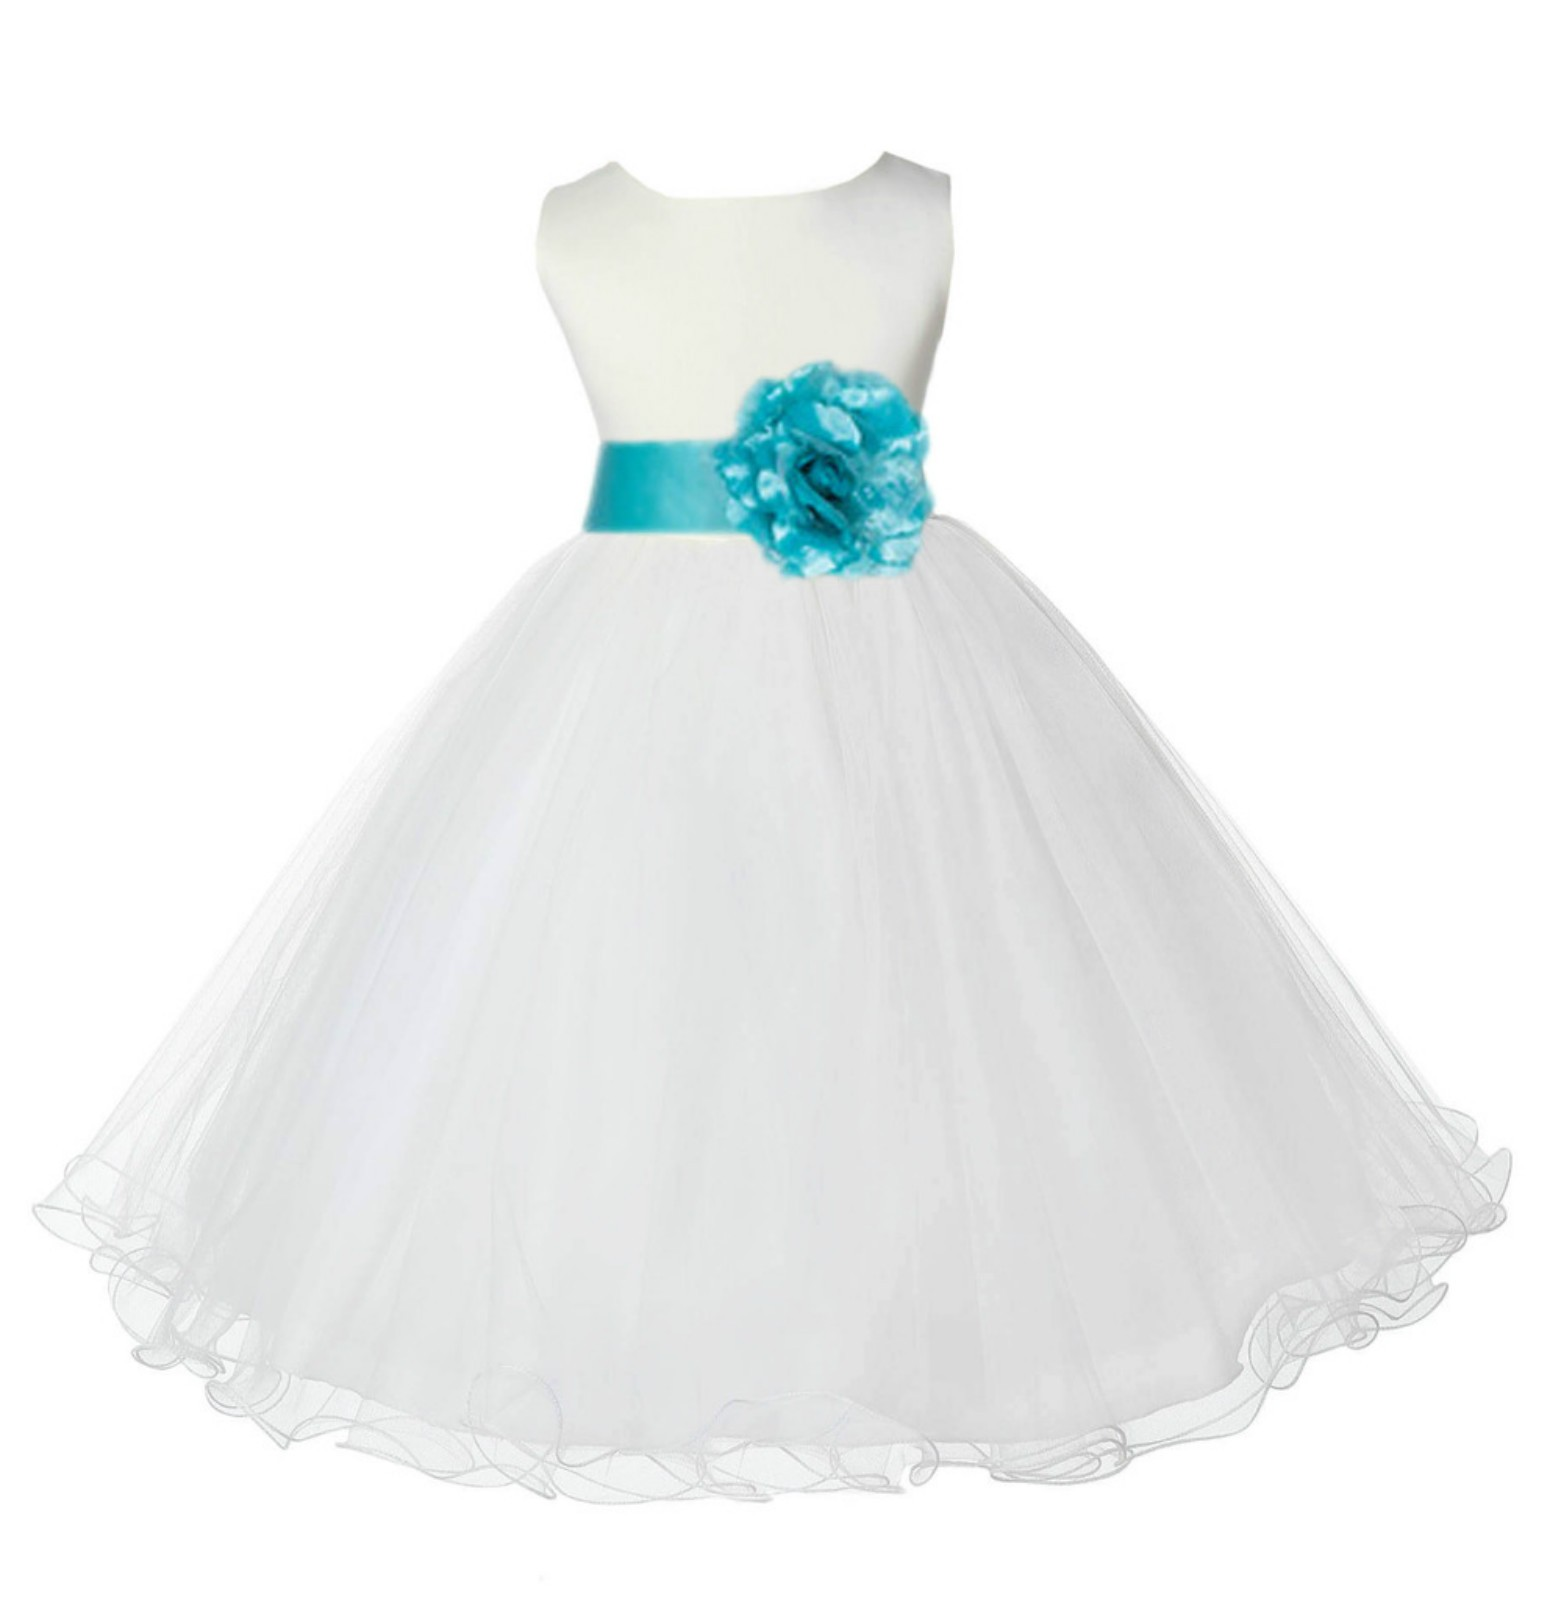 Ivory/Tiffany Tulle Rattail Edge Flower Girl Dress Pageant Recital 829S